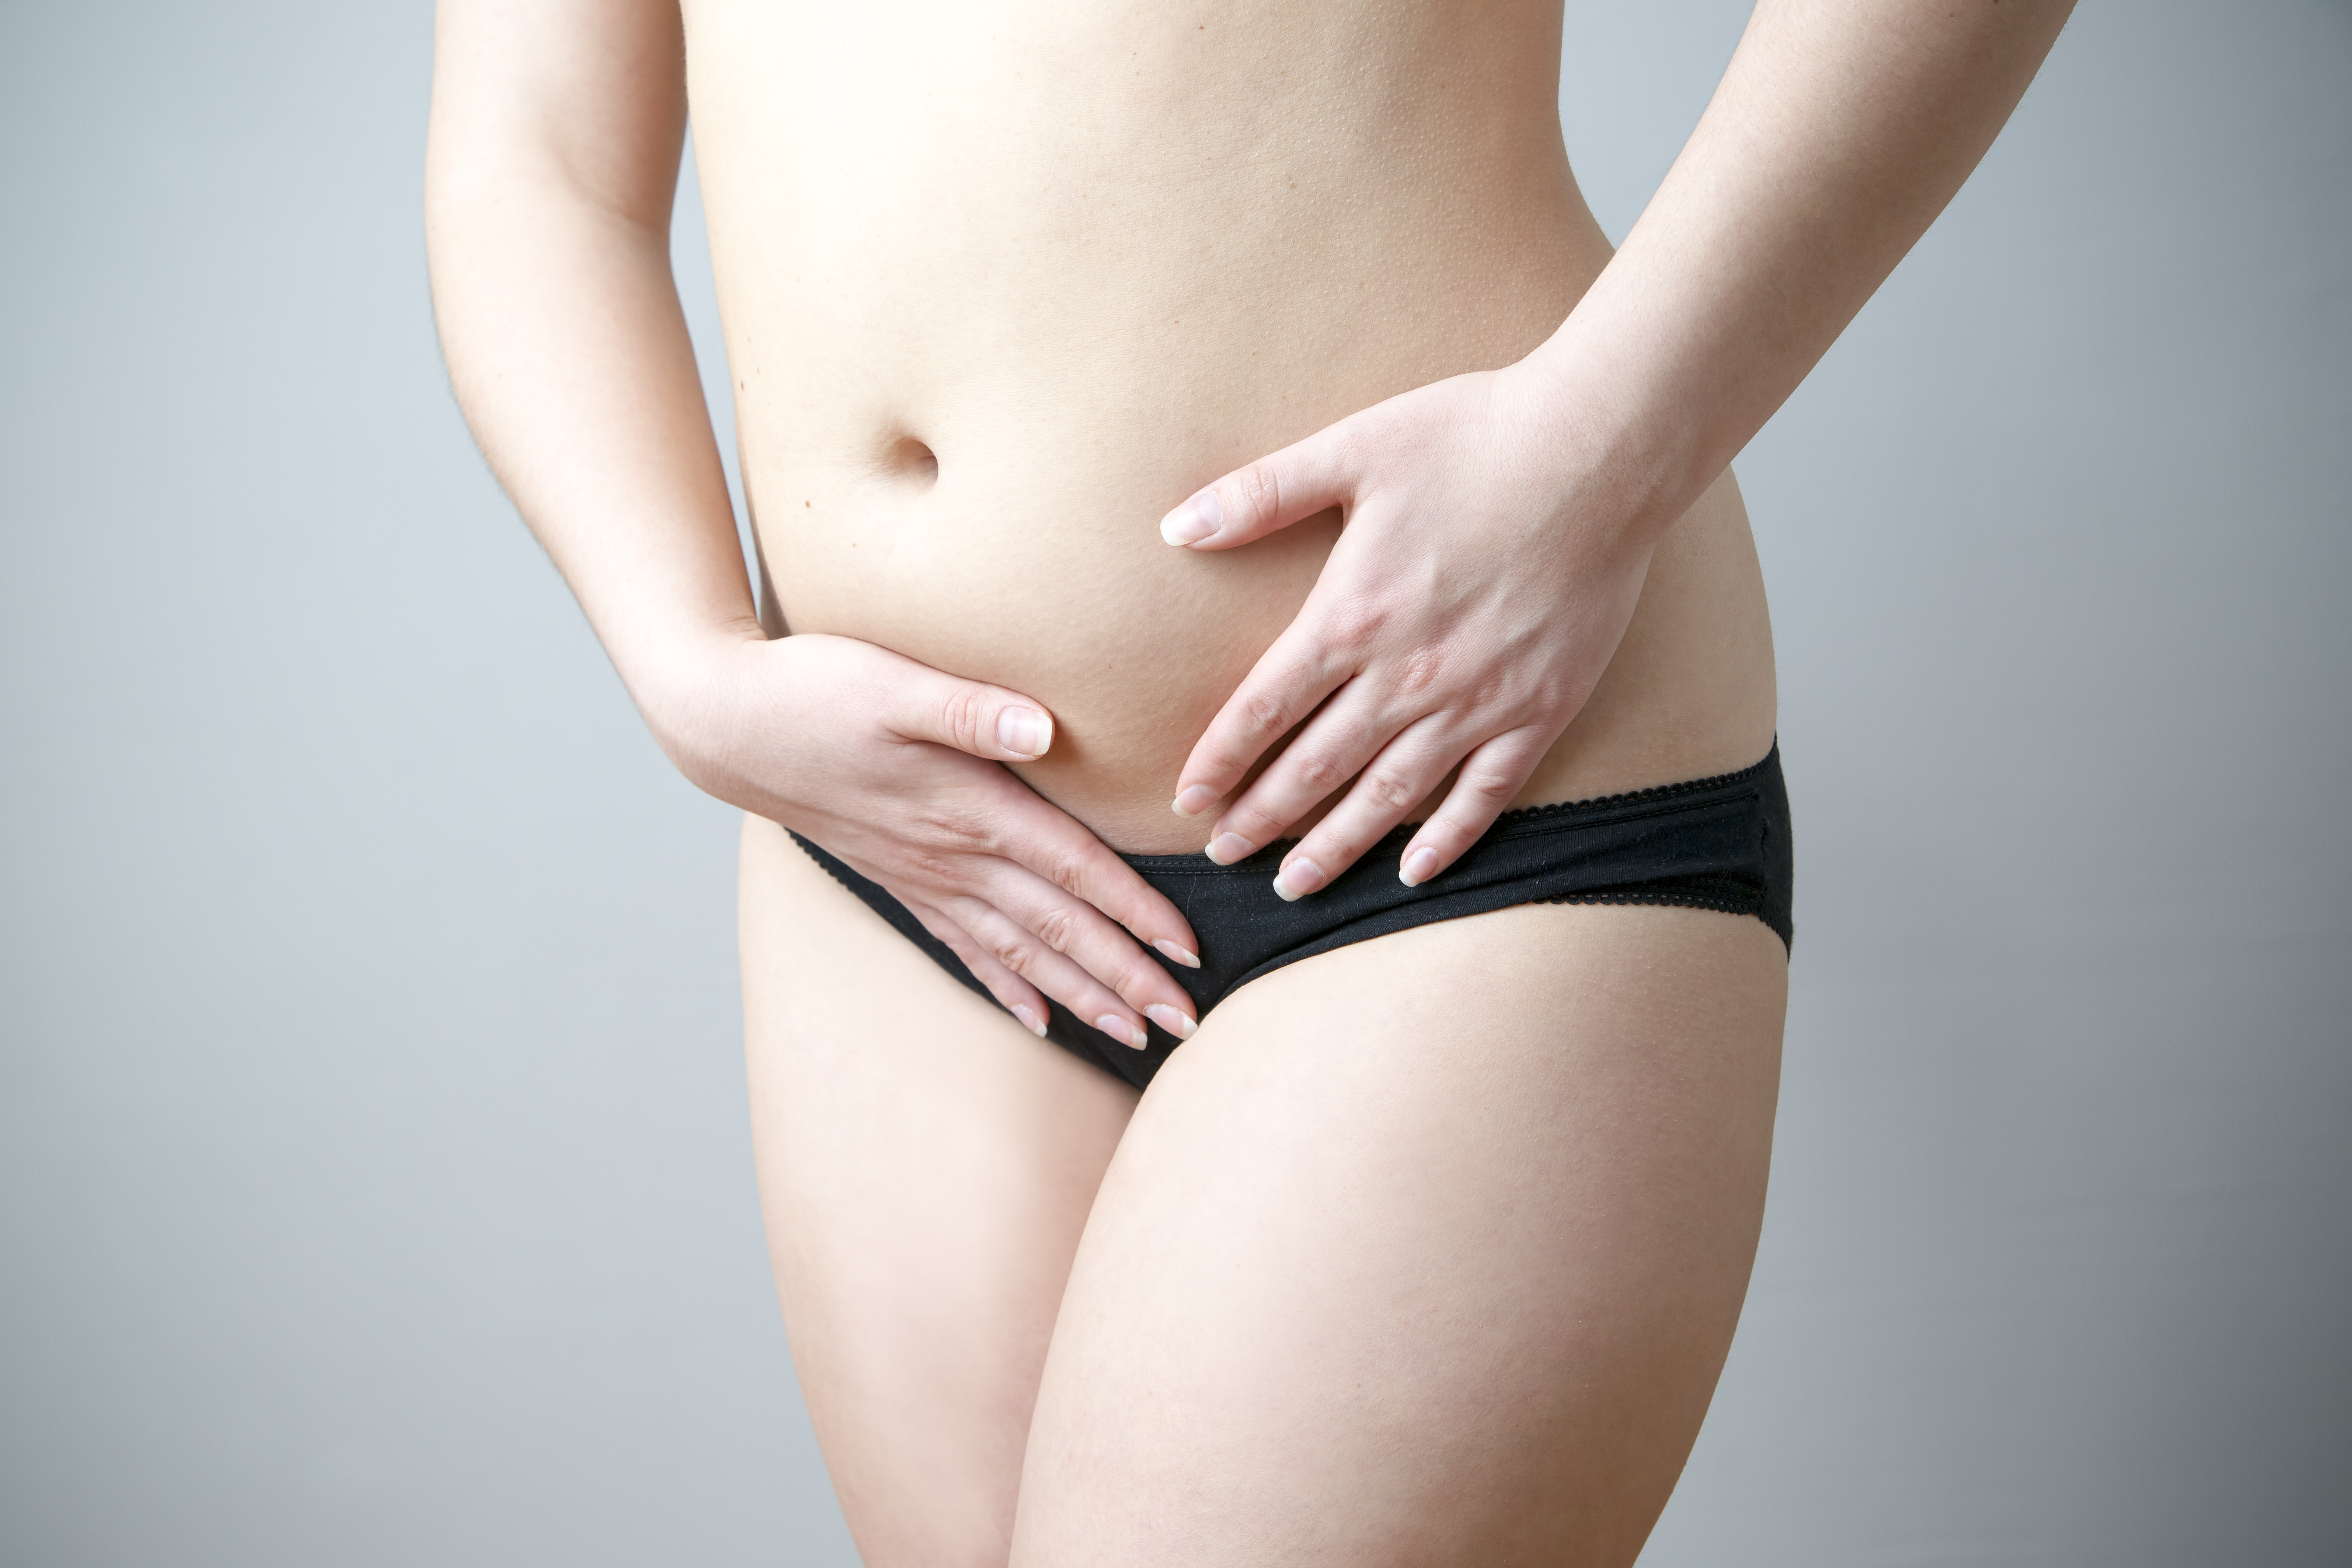 Lump in Lower Left Abdomen | Causes for a Lump in Stomach